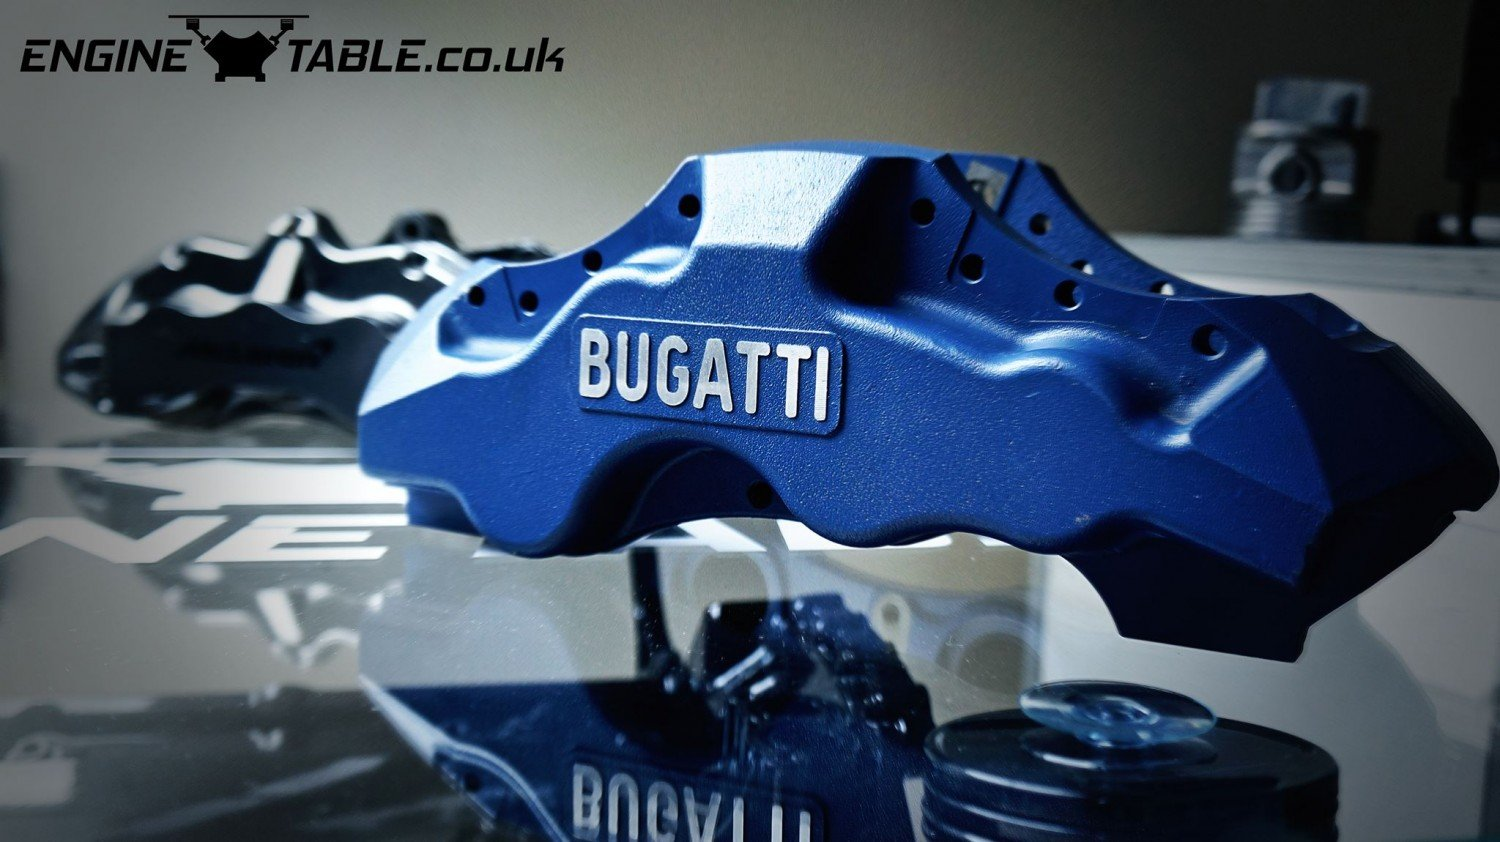 Bugatti Veyron Brake Caliper Engine Table Uk